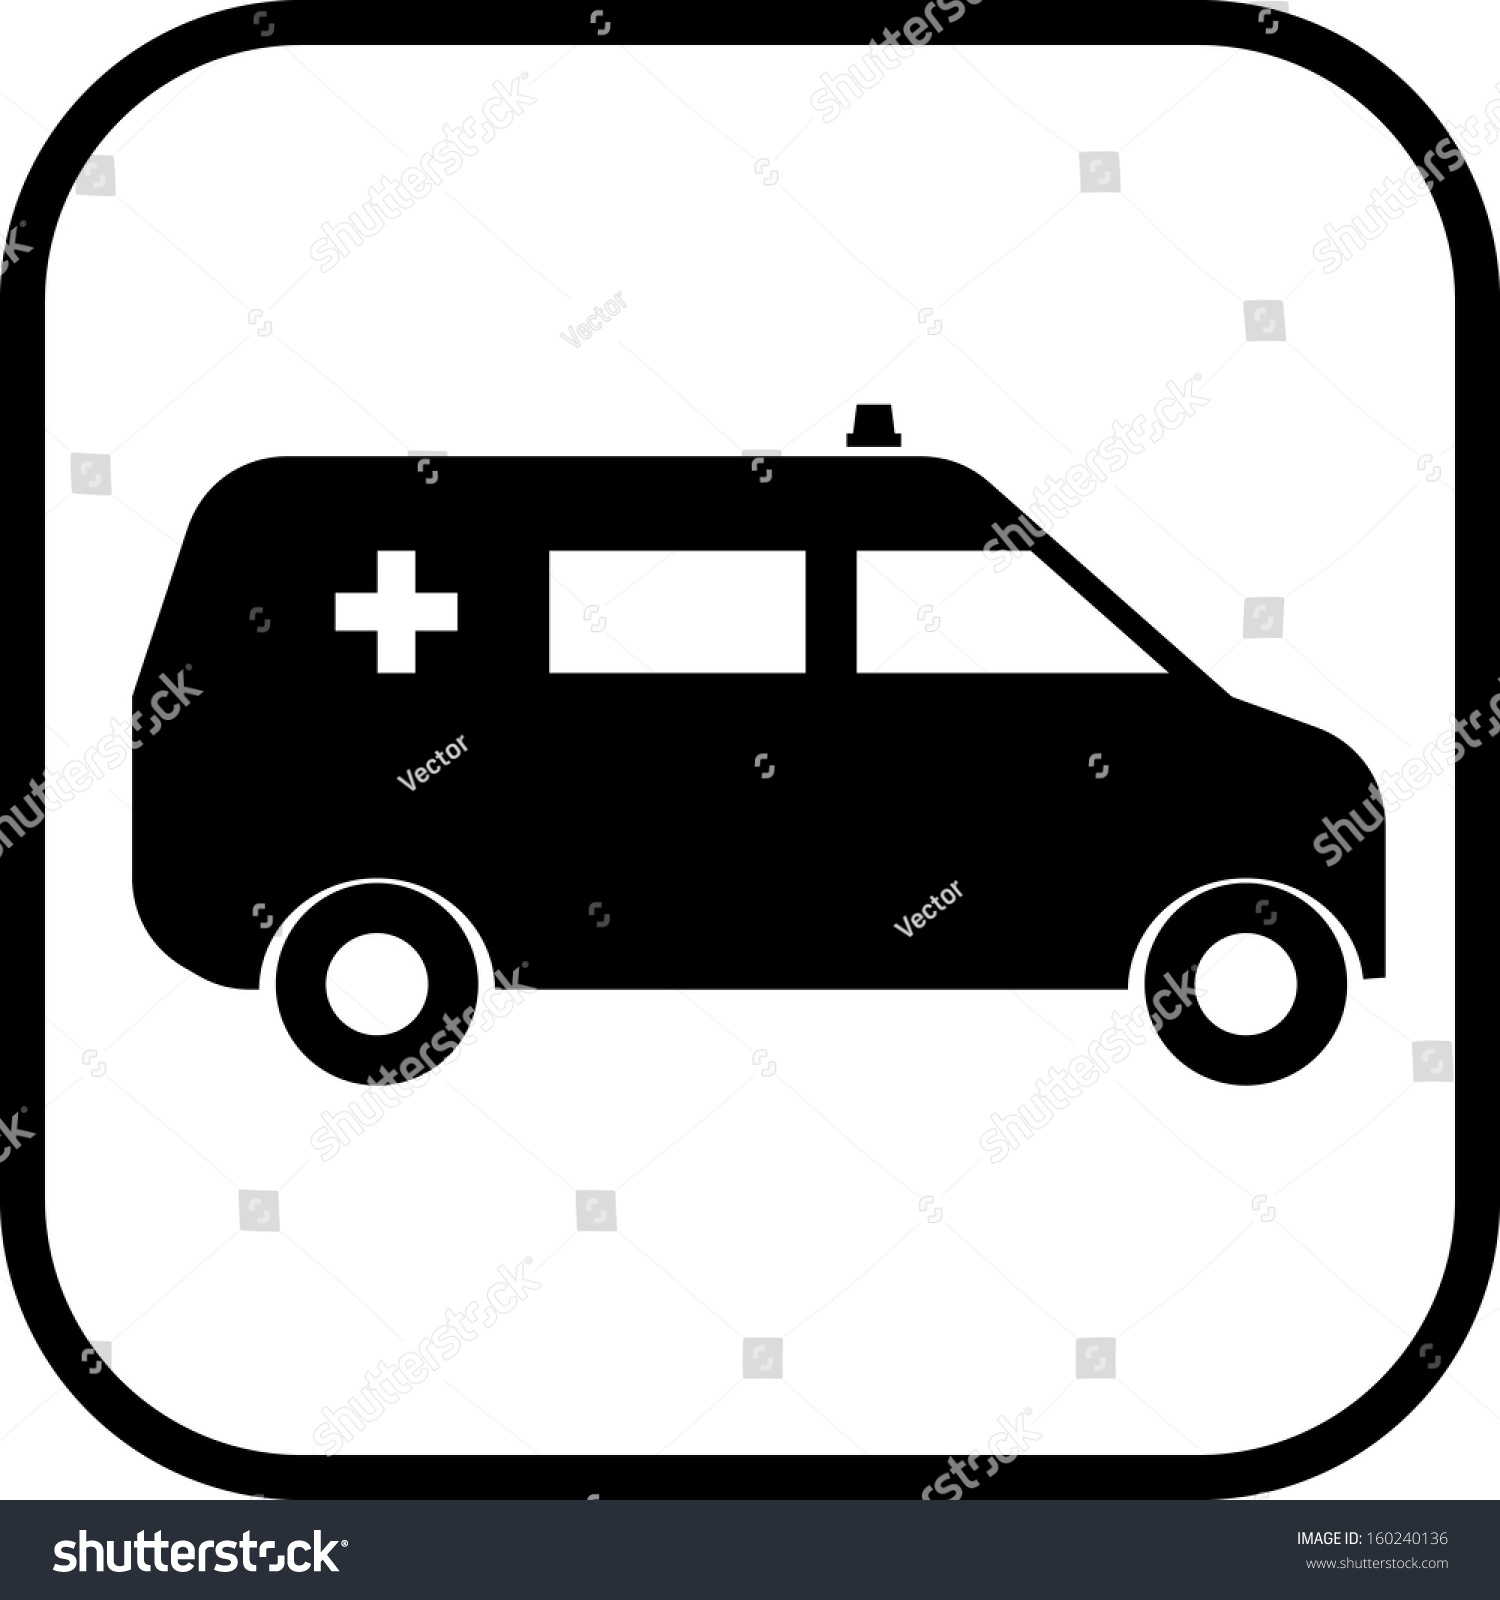 ambulance van car vector icon stock vector 2018 160240136 rh shutterstock com car dashboard icons vector free car vector icon free download